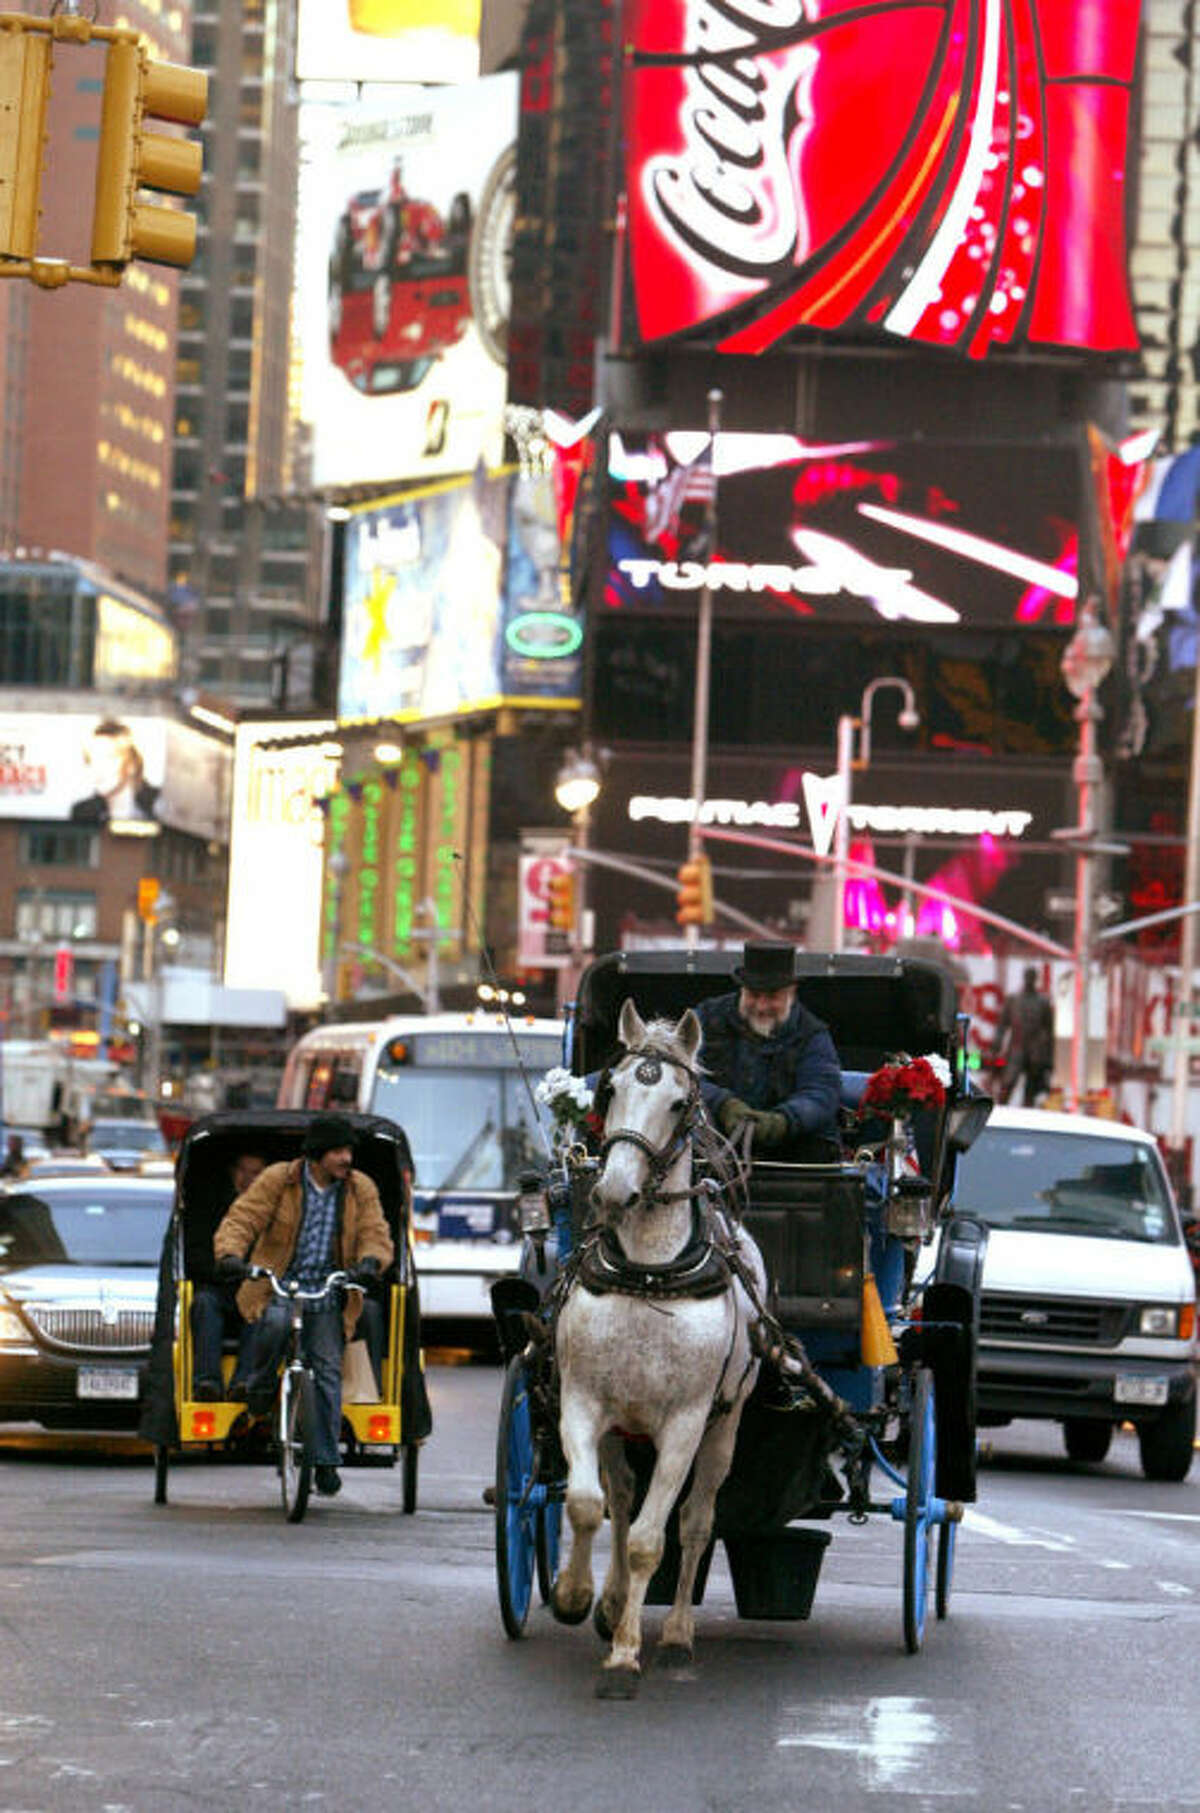 FILE- In this March 1, 2006, file photo, a pedicab driver, left, and a horse-drawn carriage make their way down Broadway in New York's Times Square. New York City Mayor Bill de Blasio seeks to shut down the city?'s horse-drawn-carriage industry, believing that it was less than humane to put horses on busy New York City streets. Carriage-horse drivers counter that their industry provides homes for surplus horses from farms and the racing industry that would otherwise be shipped off to slaughterhouses. (AP Photo/Mary Altaffer, File)